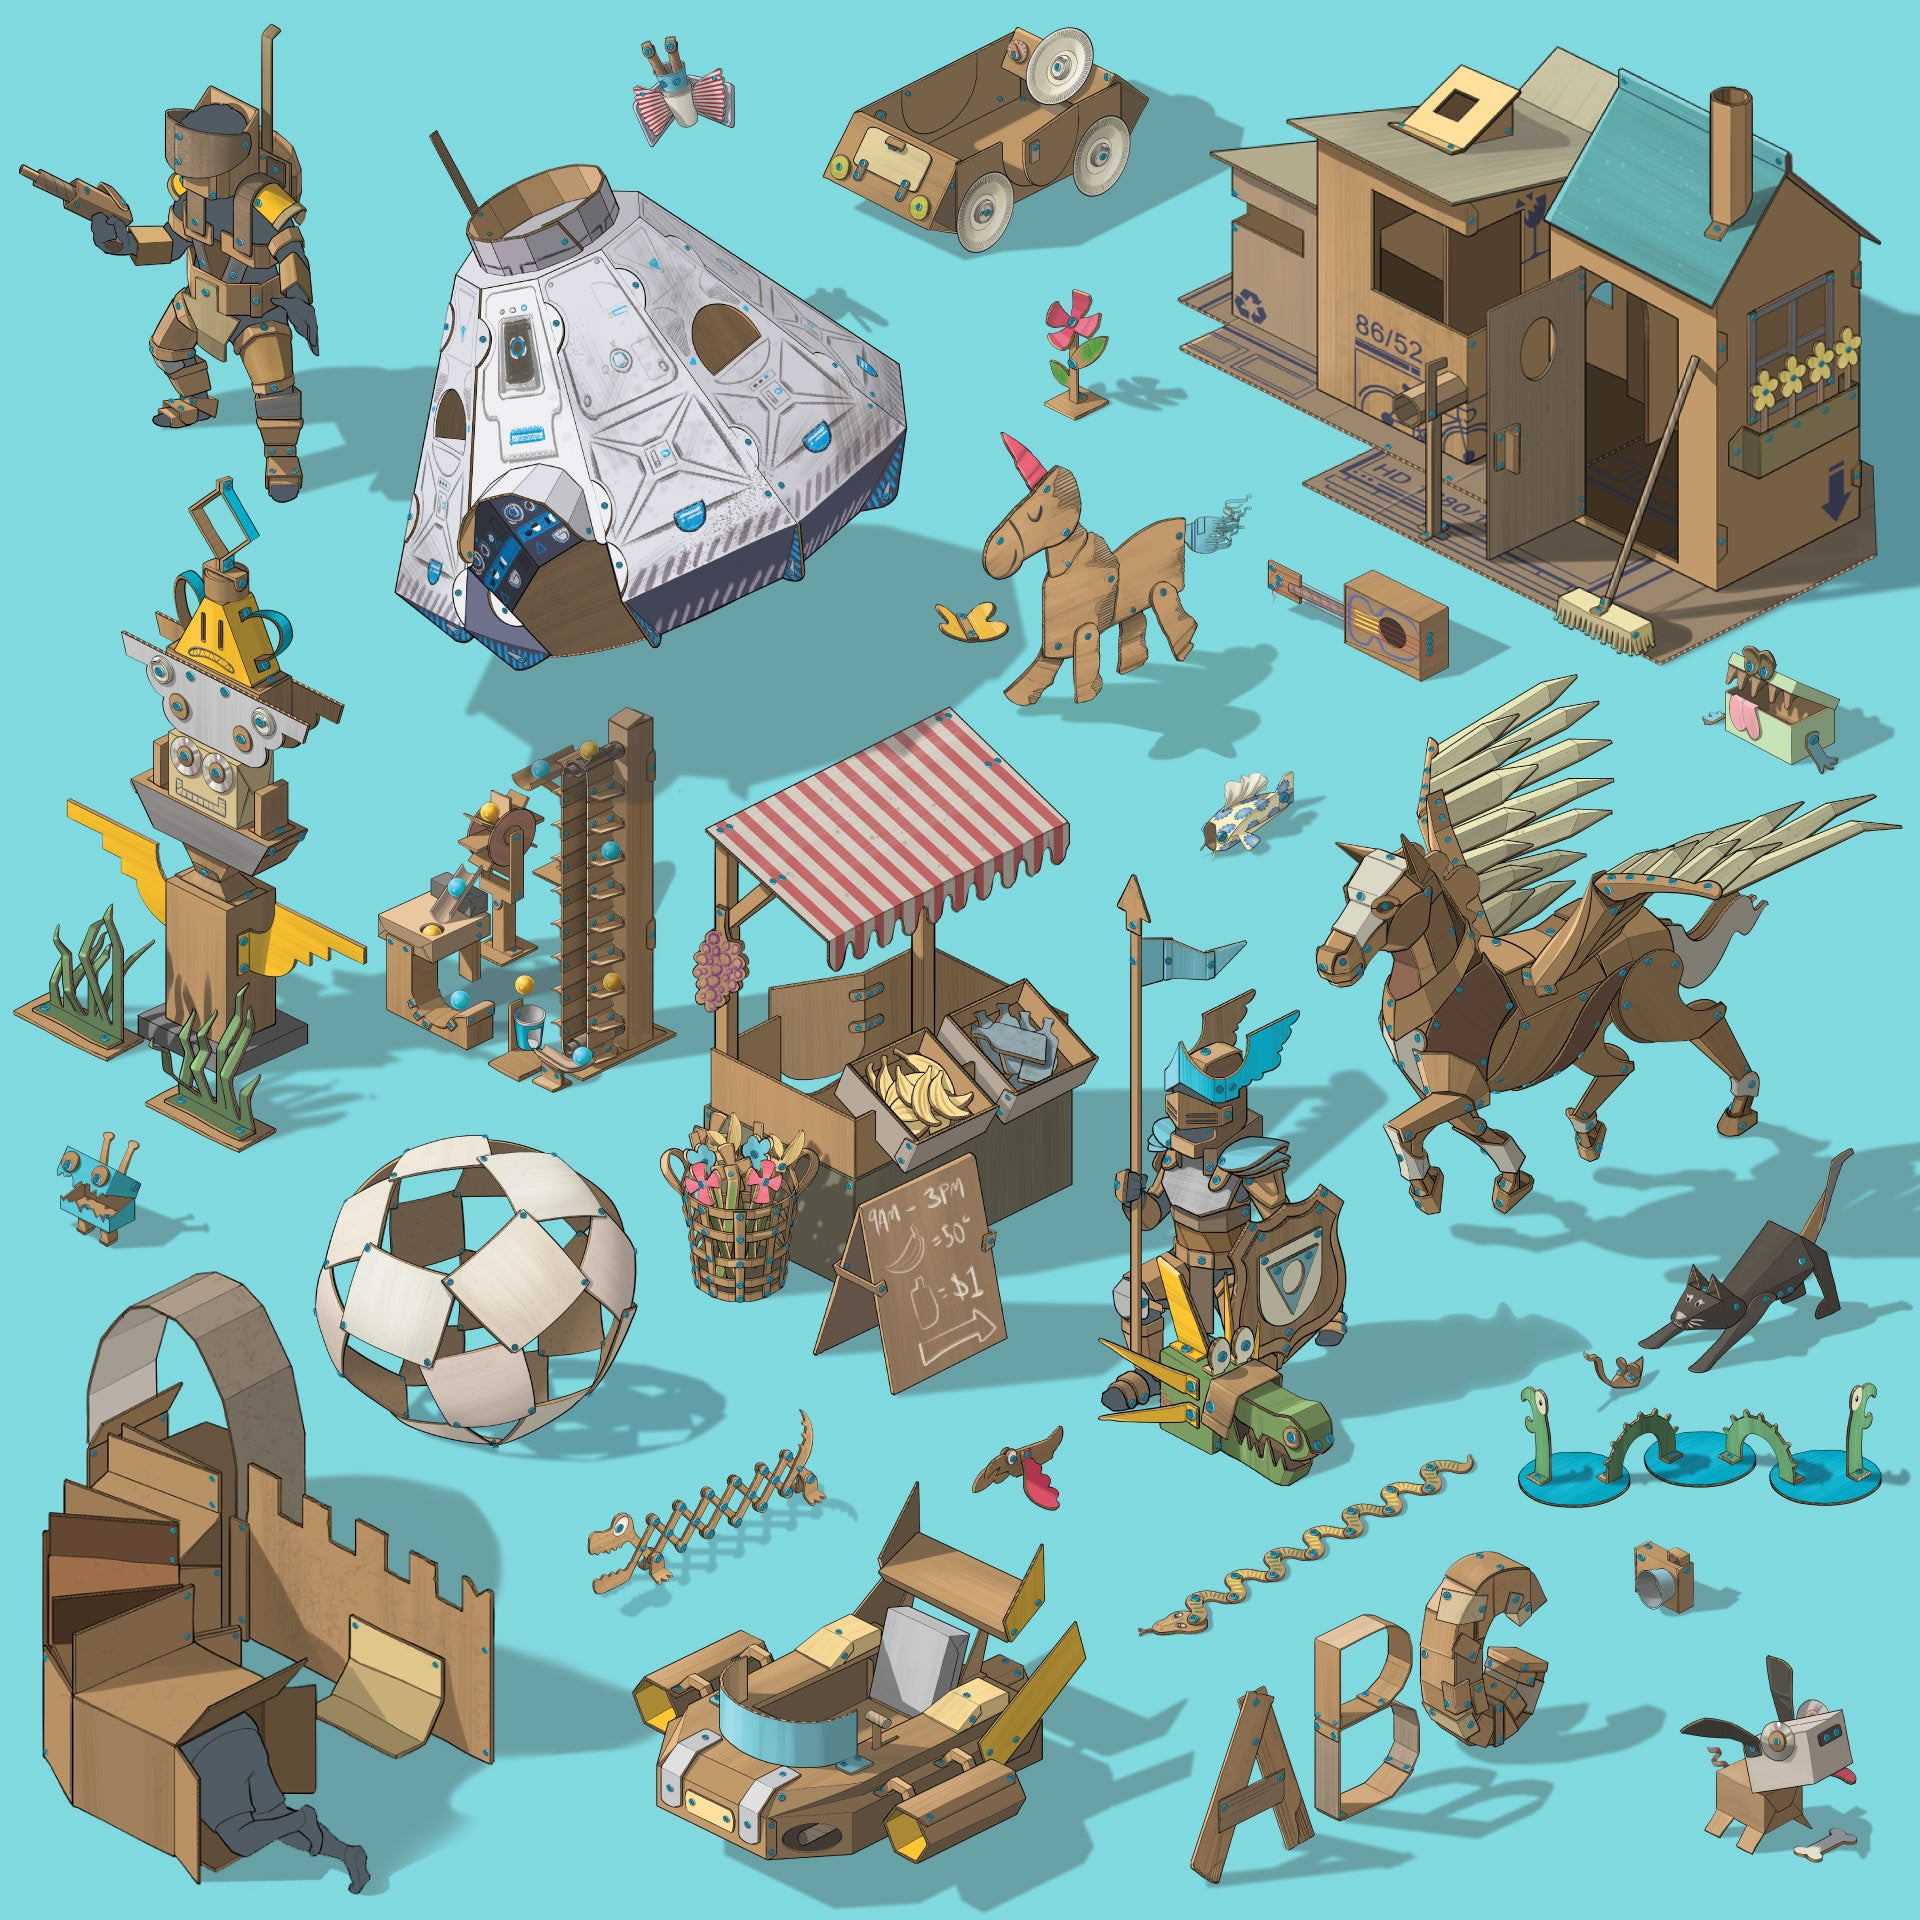 Illustrated world of Makedo cardboard creations - Discover Kit